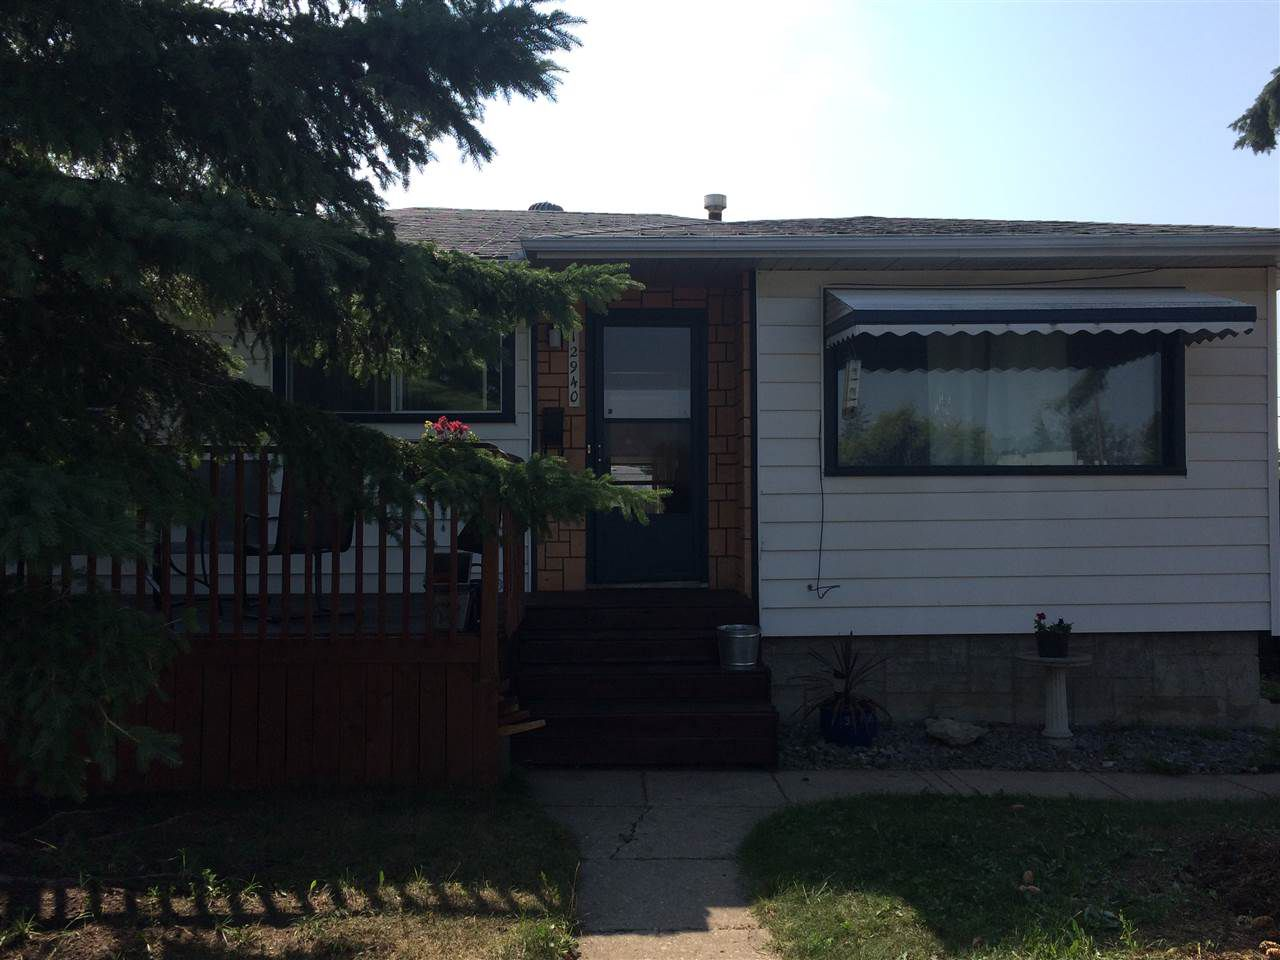 Main Photo: 12940 86 Street in Edmonton: Zone 02 House for sale : MLS®# E4124570